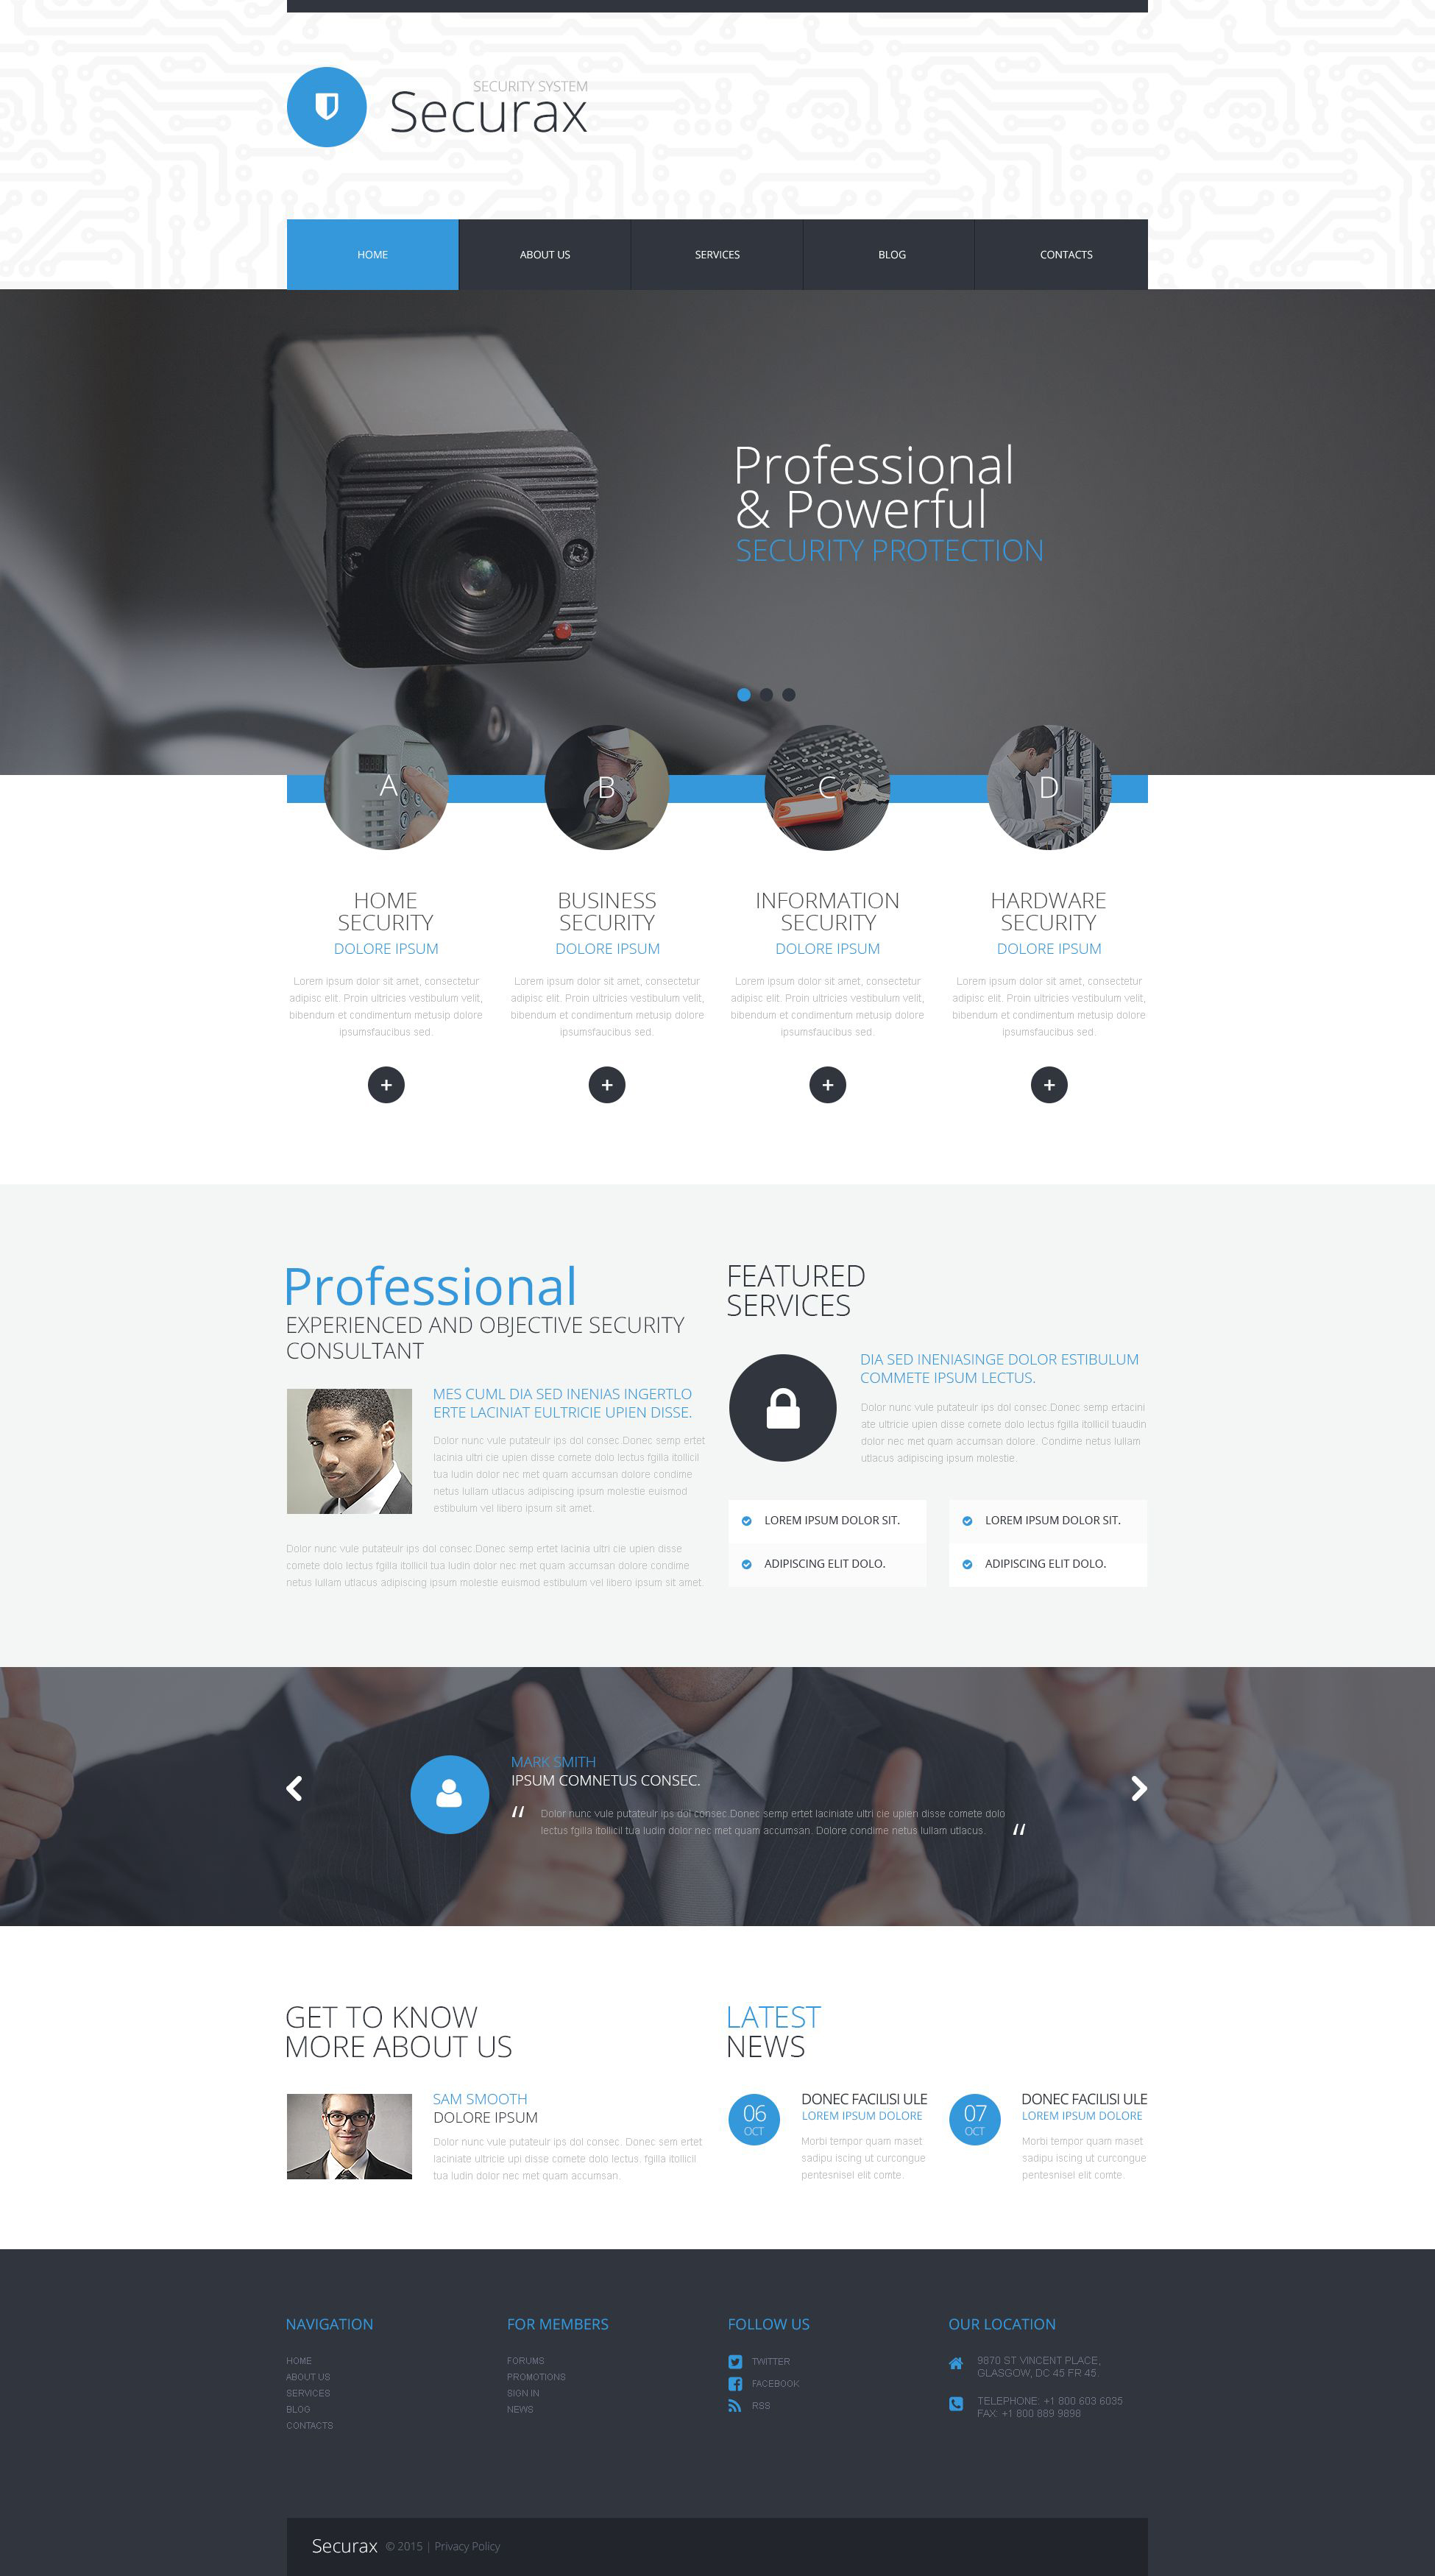 The Securax Security Systems WordPress Design 53386, one of the best WordPress themes of its kind (business, most popular), also known as securax security systems WordPress template, pro company WordPress template, guard WordPress template, camera WordPress template, information WordPress template, safety WordPress template, alarm systems WordPress template, door WordPress template, control WordPress template, protection WordPress template, home WordPress template, health WordPress template, mobile WordPress template, monitoring WordPress template, personal car WordPress template, signaling WordPress template, offer WordPress template, special product solution WordPress template, staff WordPress template, support WordPress template, service WordPress template, proposition WordPress template, resource WordPress template, client WordPress template, testimonials WordPress template, enterprise WordPress template, specia and related with securax security systems, pro company, guard, camera, information, safety, alarm systems, door, control, protection, home, health, mobile, monitoring, personal car, signaling, offer, special product solution, staff, support, service, proposition, resource, client, testimonials, enterprise, specia, etc.